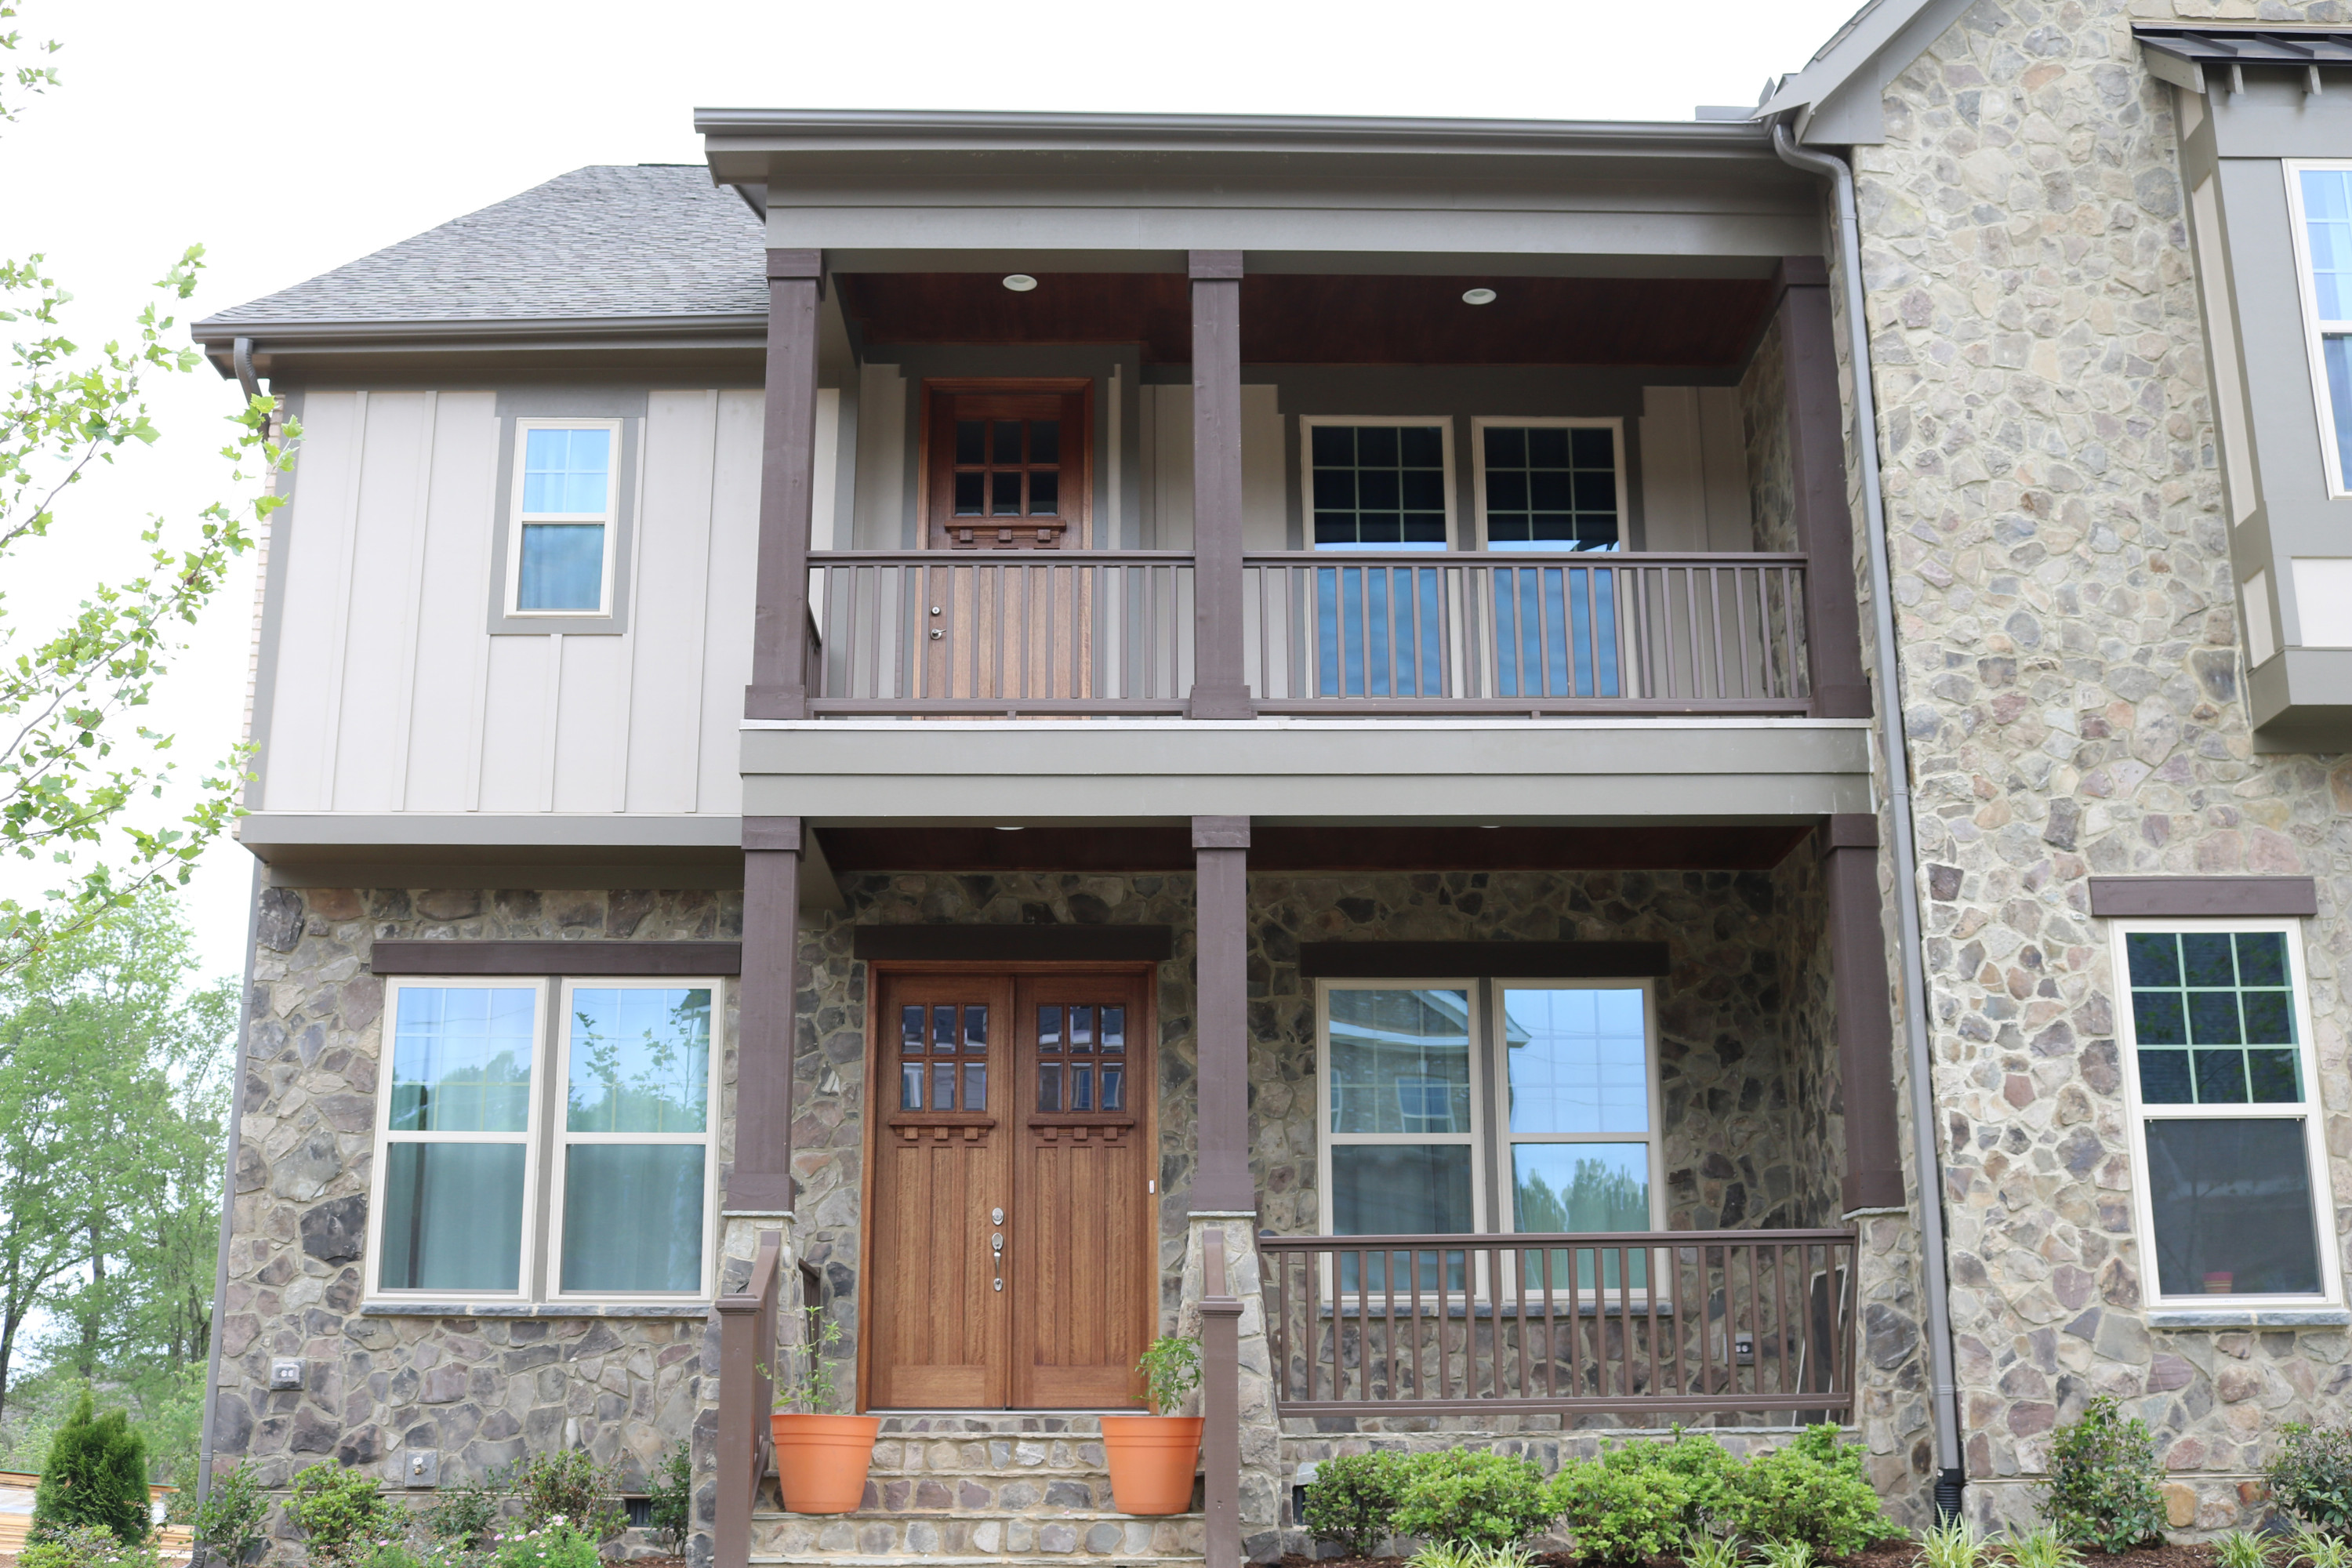 These wood post wraps and capital wraps work well with the architectural design of this home.